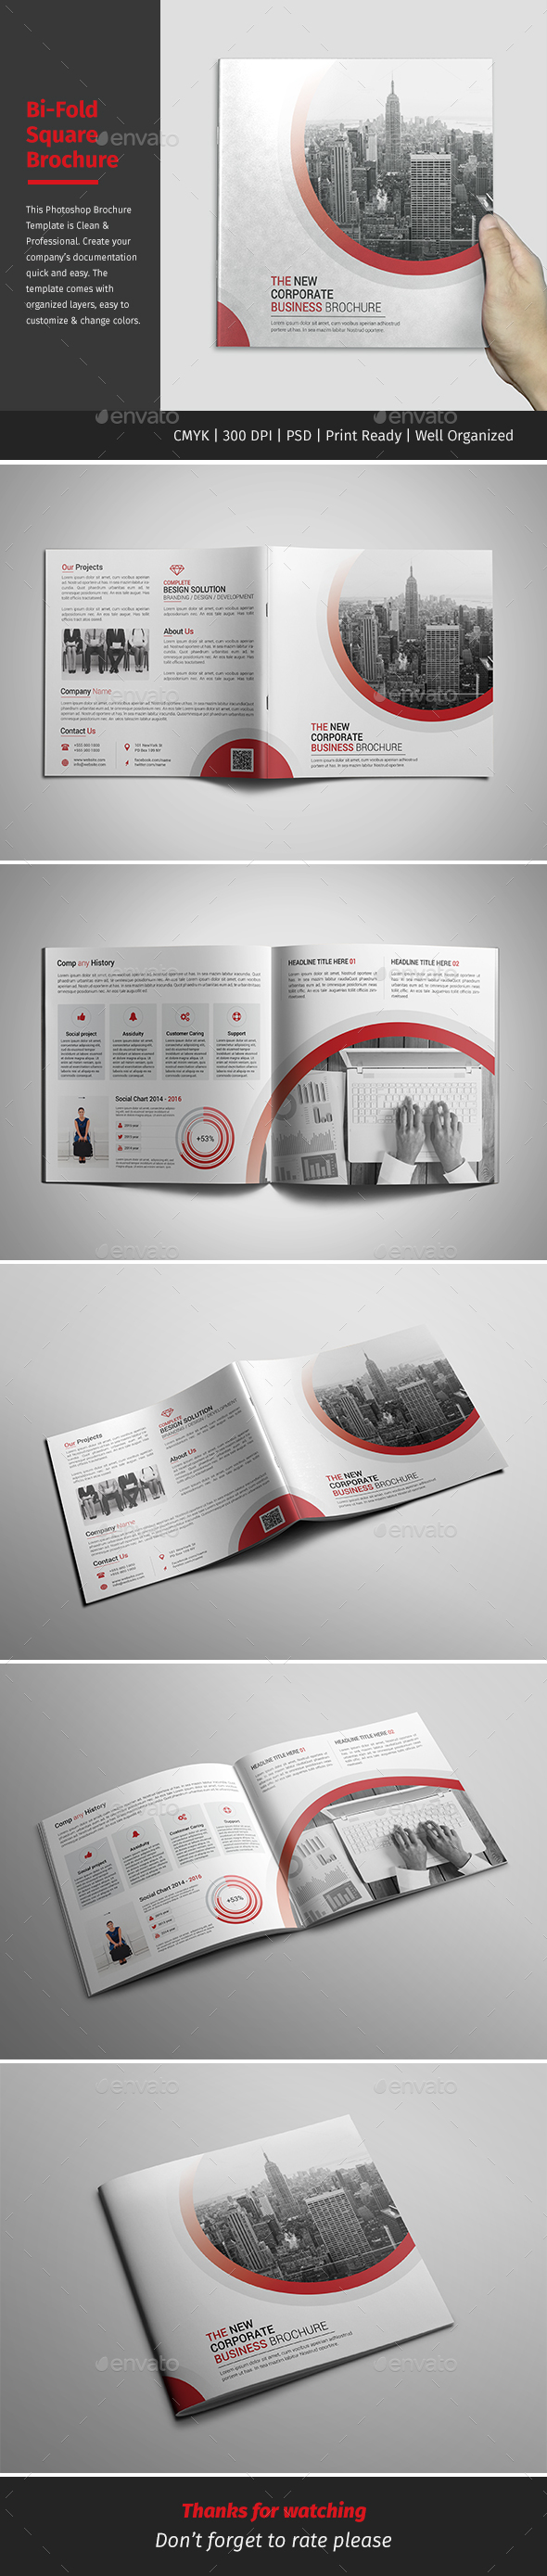 Corporate Bi-fold Square Brochure 04 - Corporate Brochures